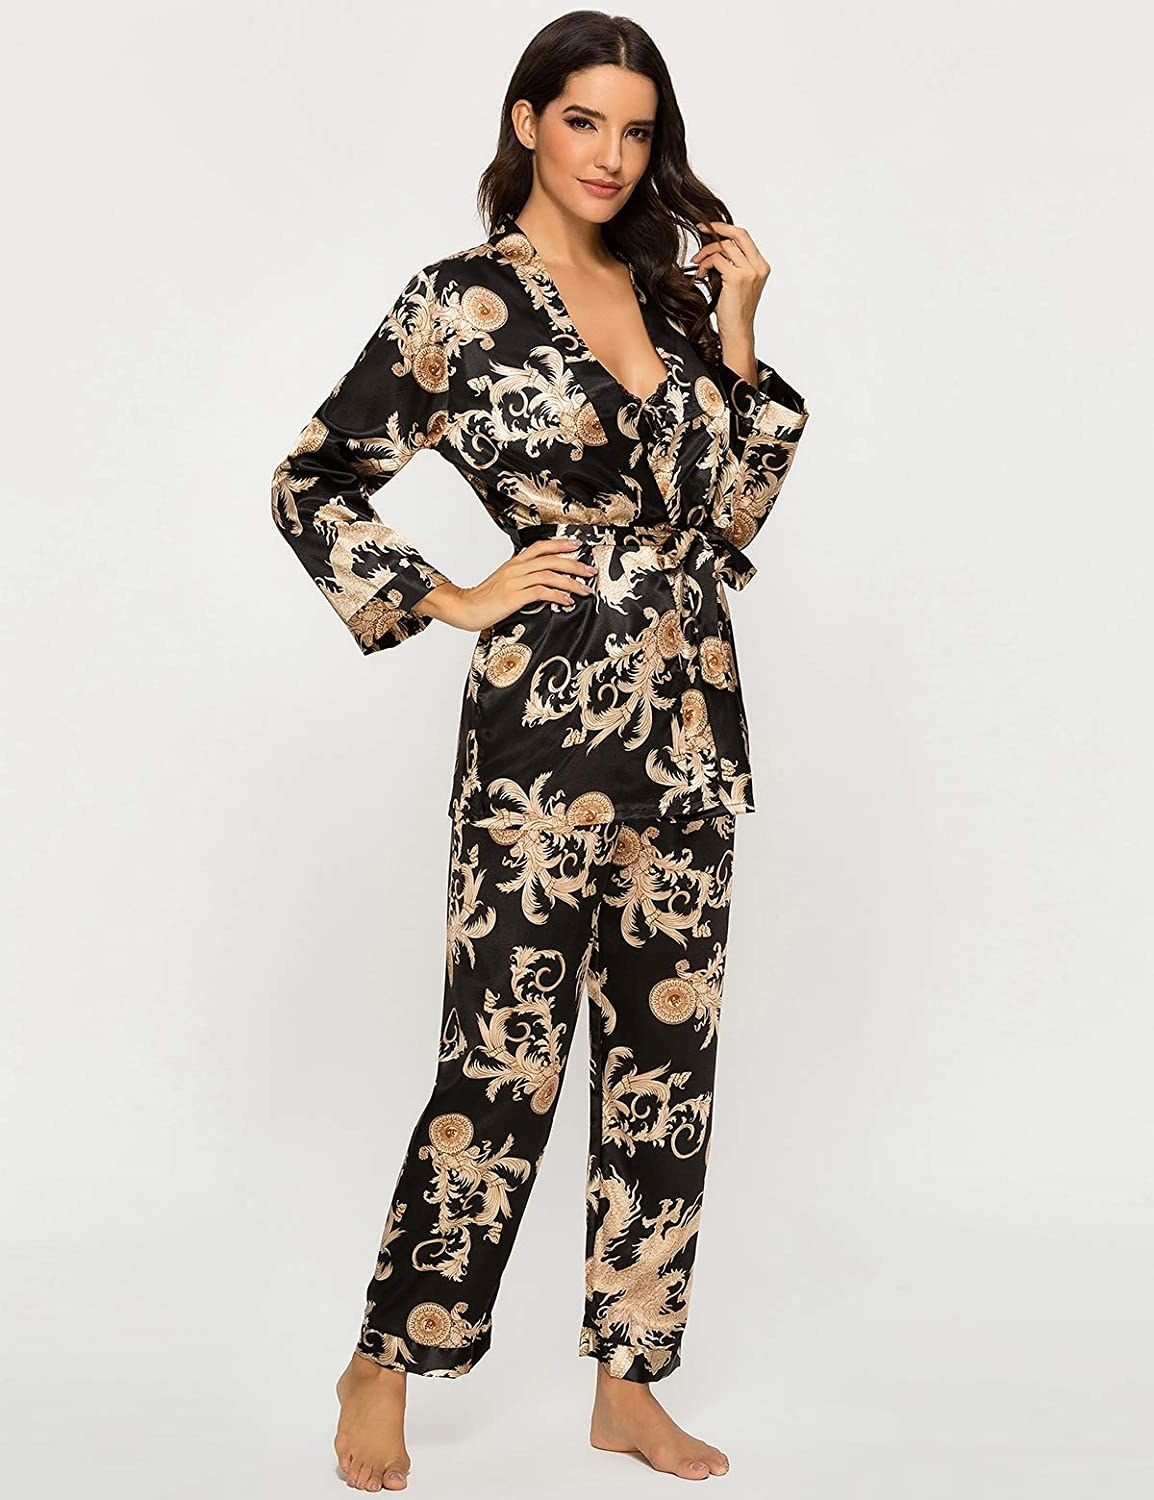 Model wearing the pajamas in black with gold floral pattern on them